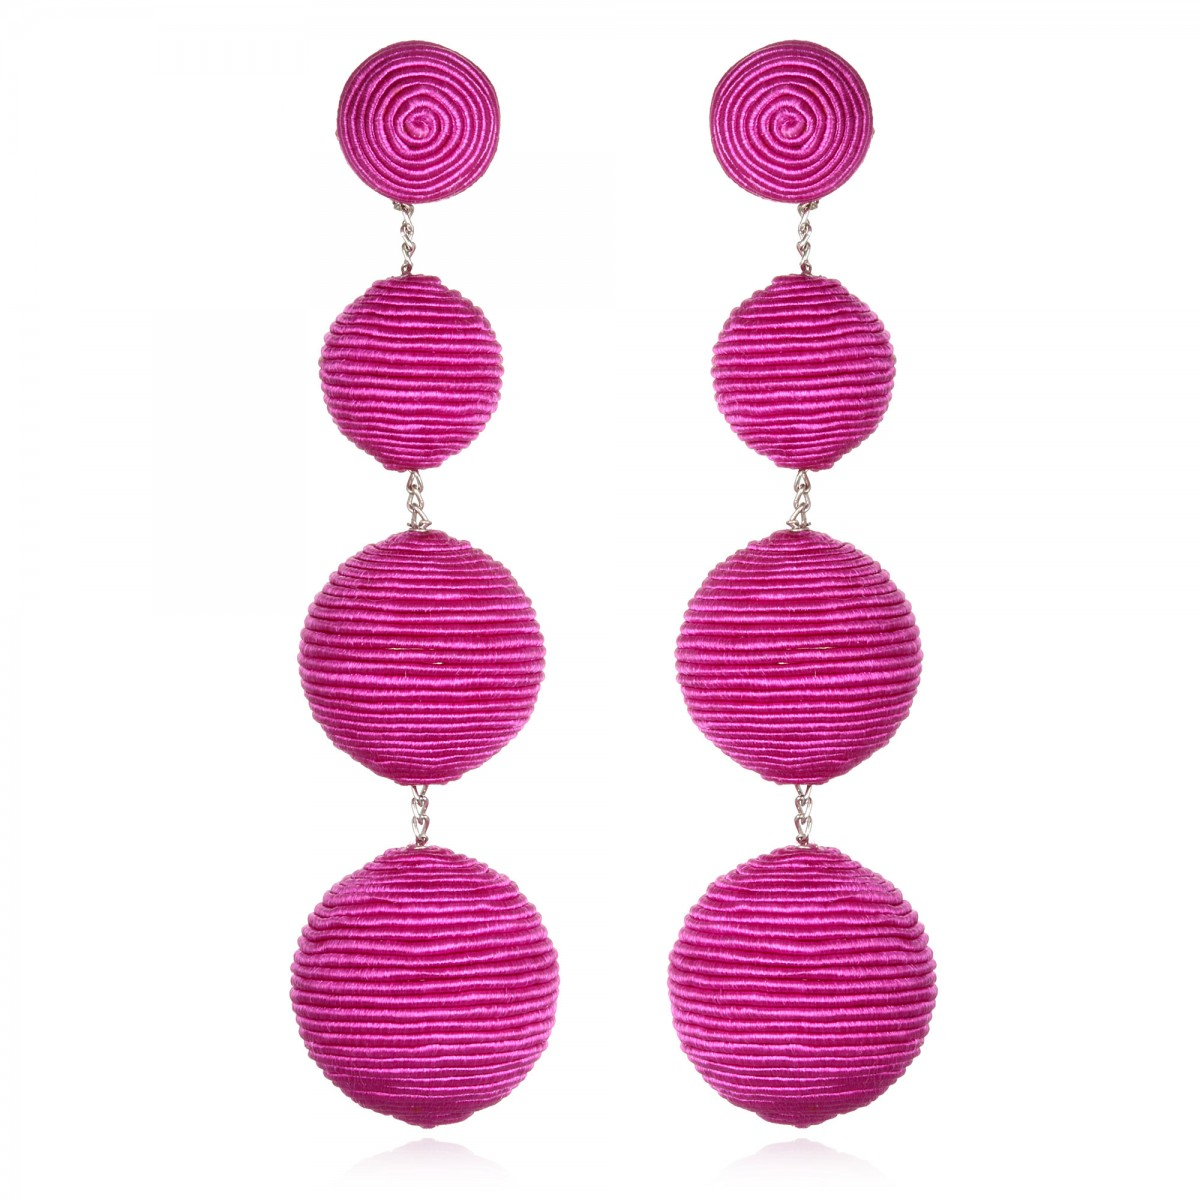 Fuchsia Gumball BonBon Earrings by SUZANNA DAI